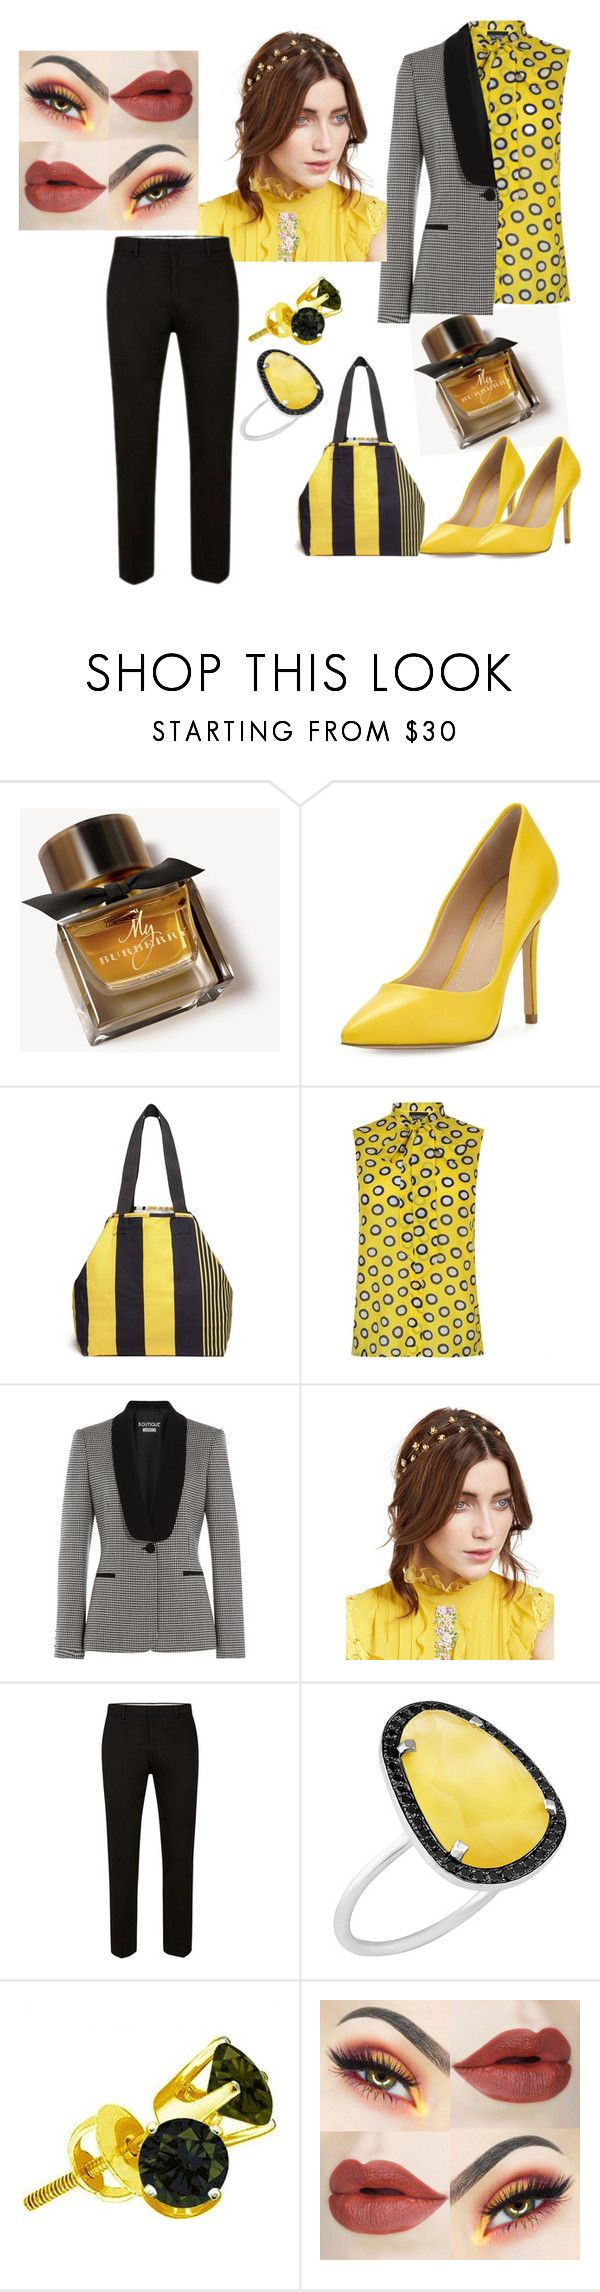 """Bold in Yellow"" by preshas-jas ❤ liked on Polyvore featuring Burberry, Charles by Charles David, Pierre-Louis Mascia, Boutique Moschino, Jennifer Behr and Christina Debs"